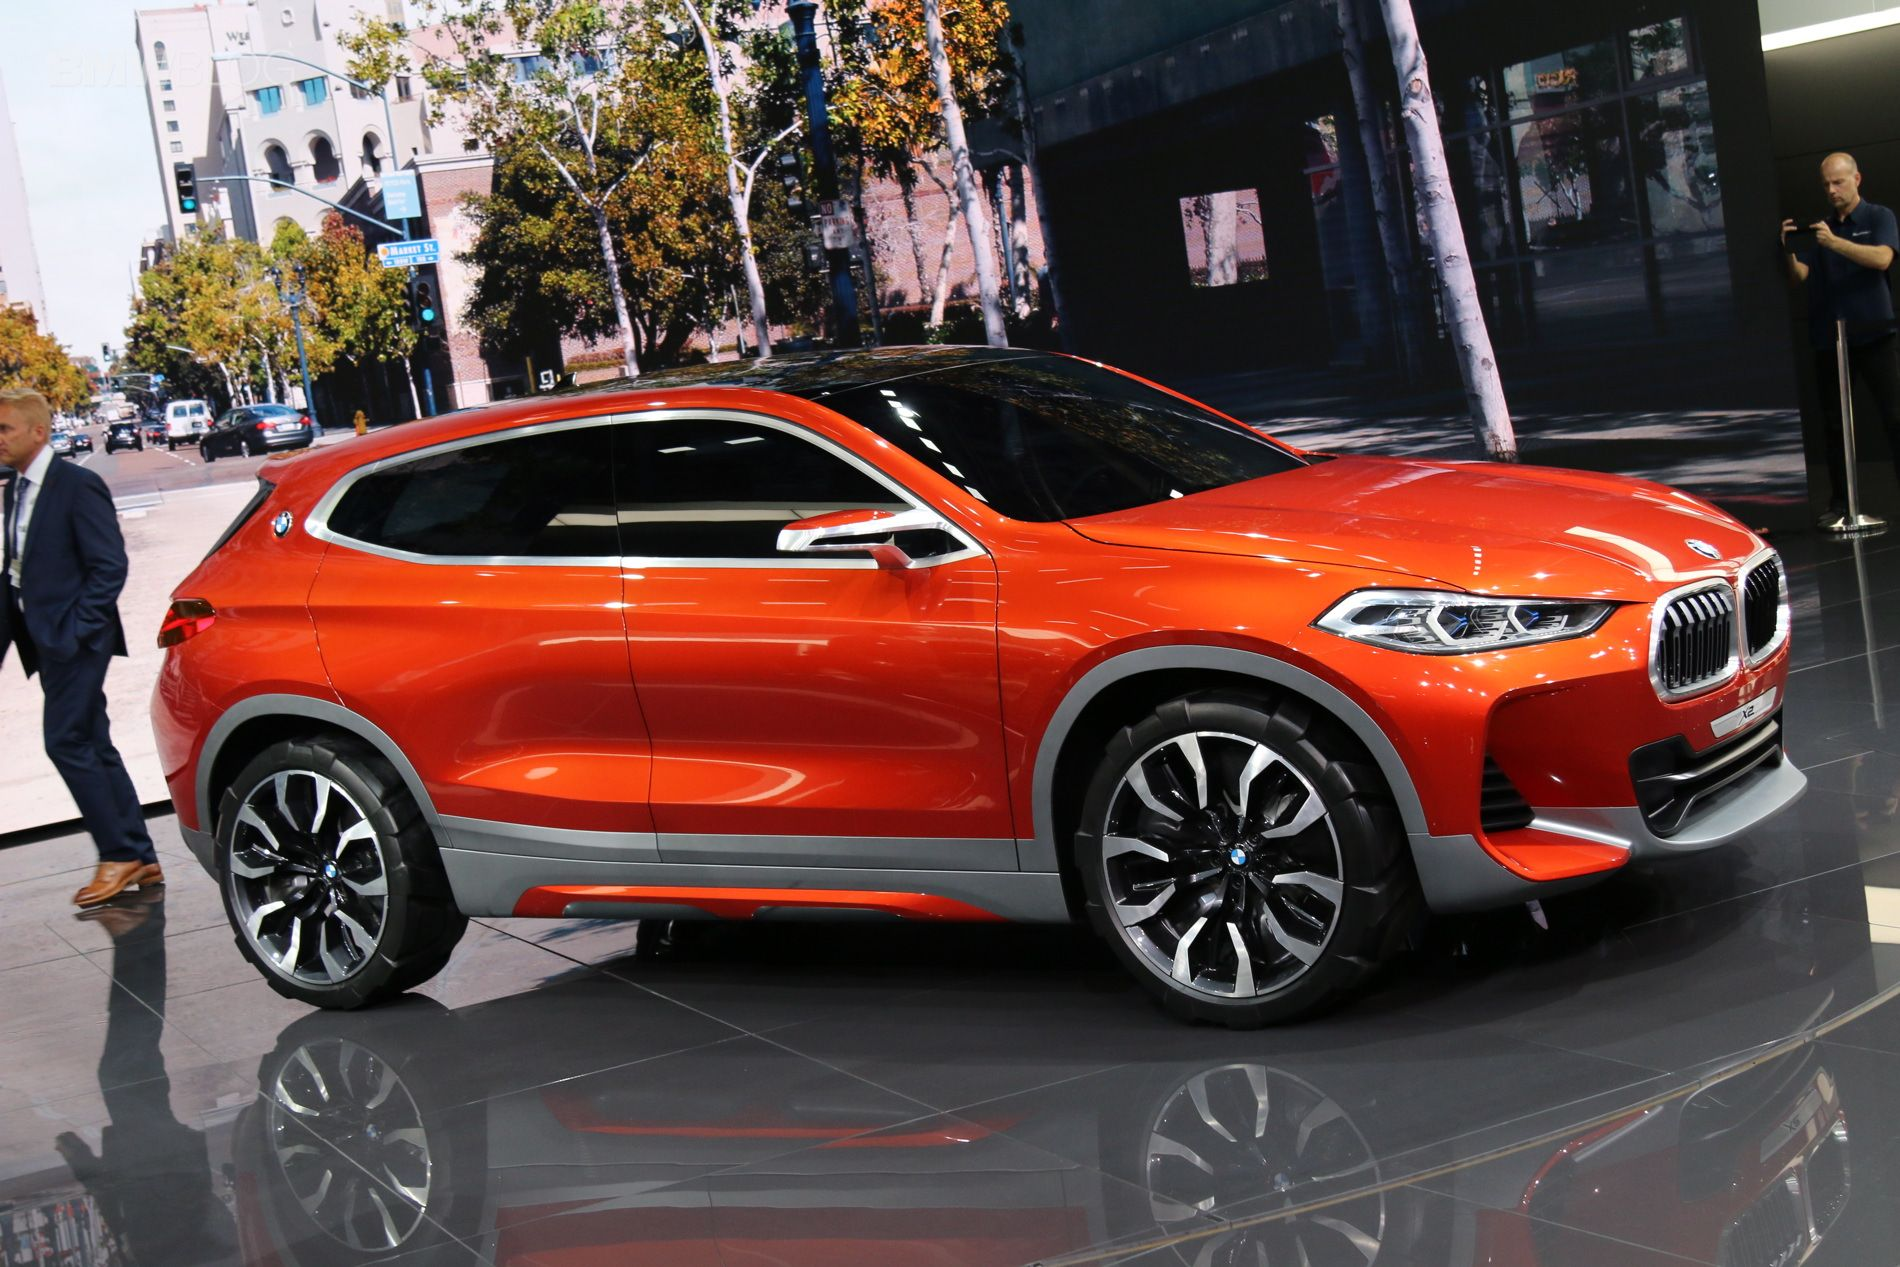 Bmw urban cross goes back to the drawing board http www bmwblog com 2016 01 10 bmw urban cross goes back to the drawing board bmw pinterest bmw